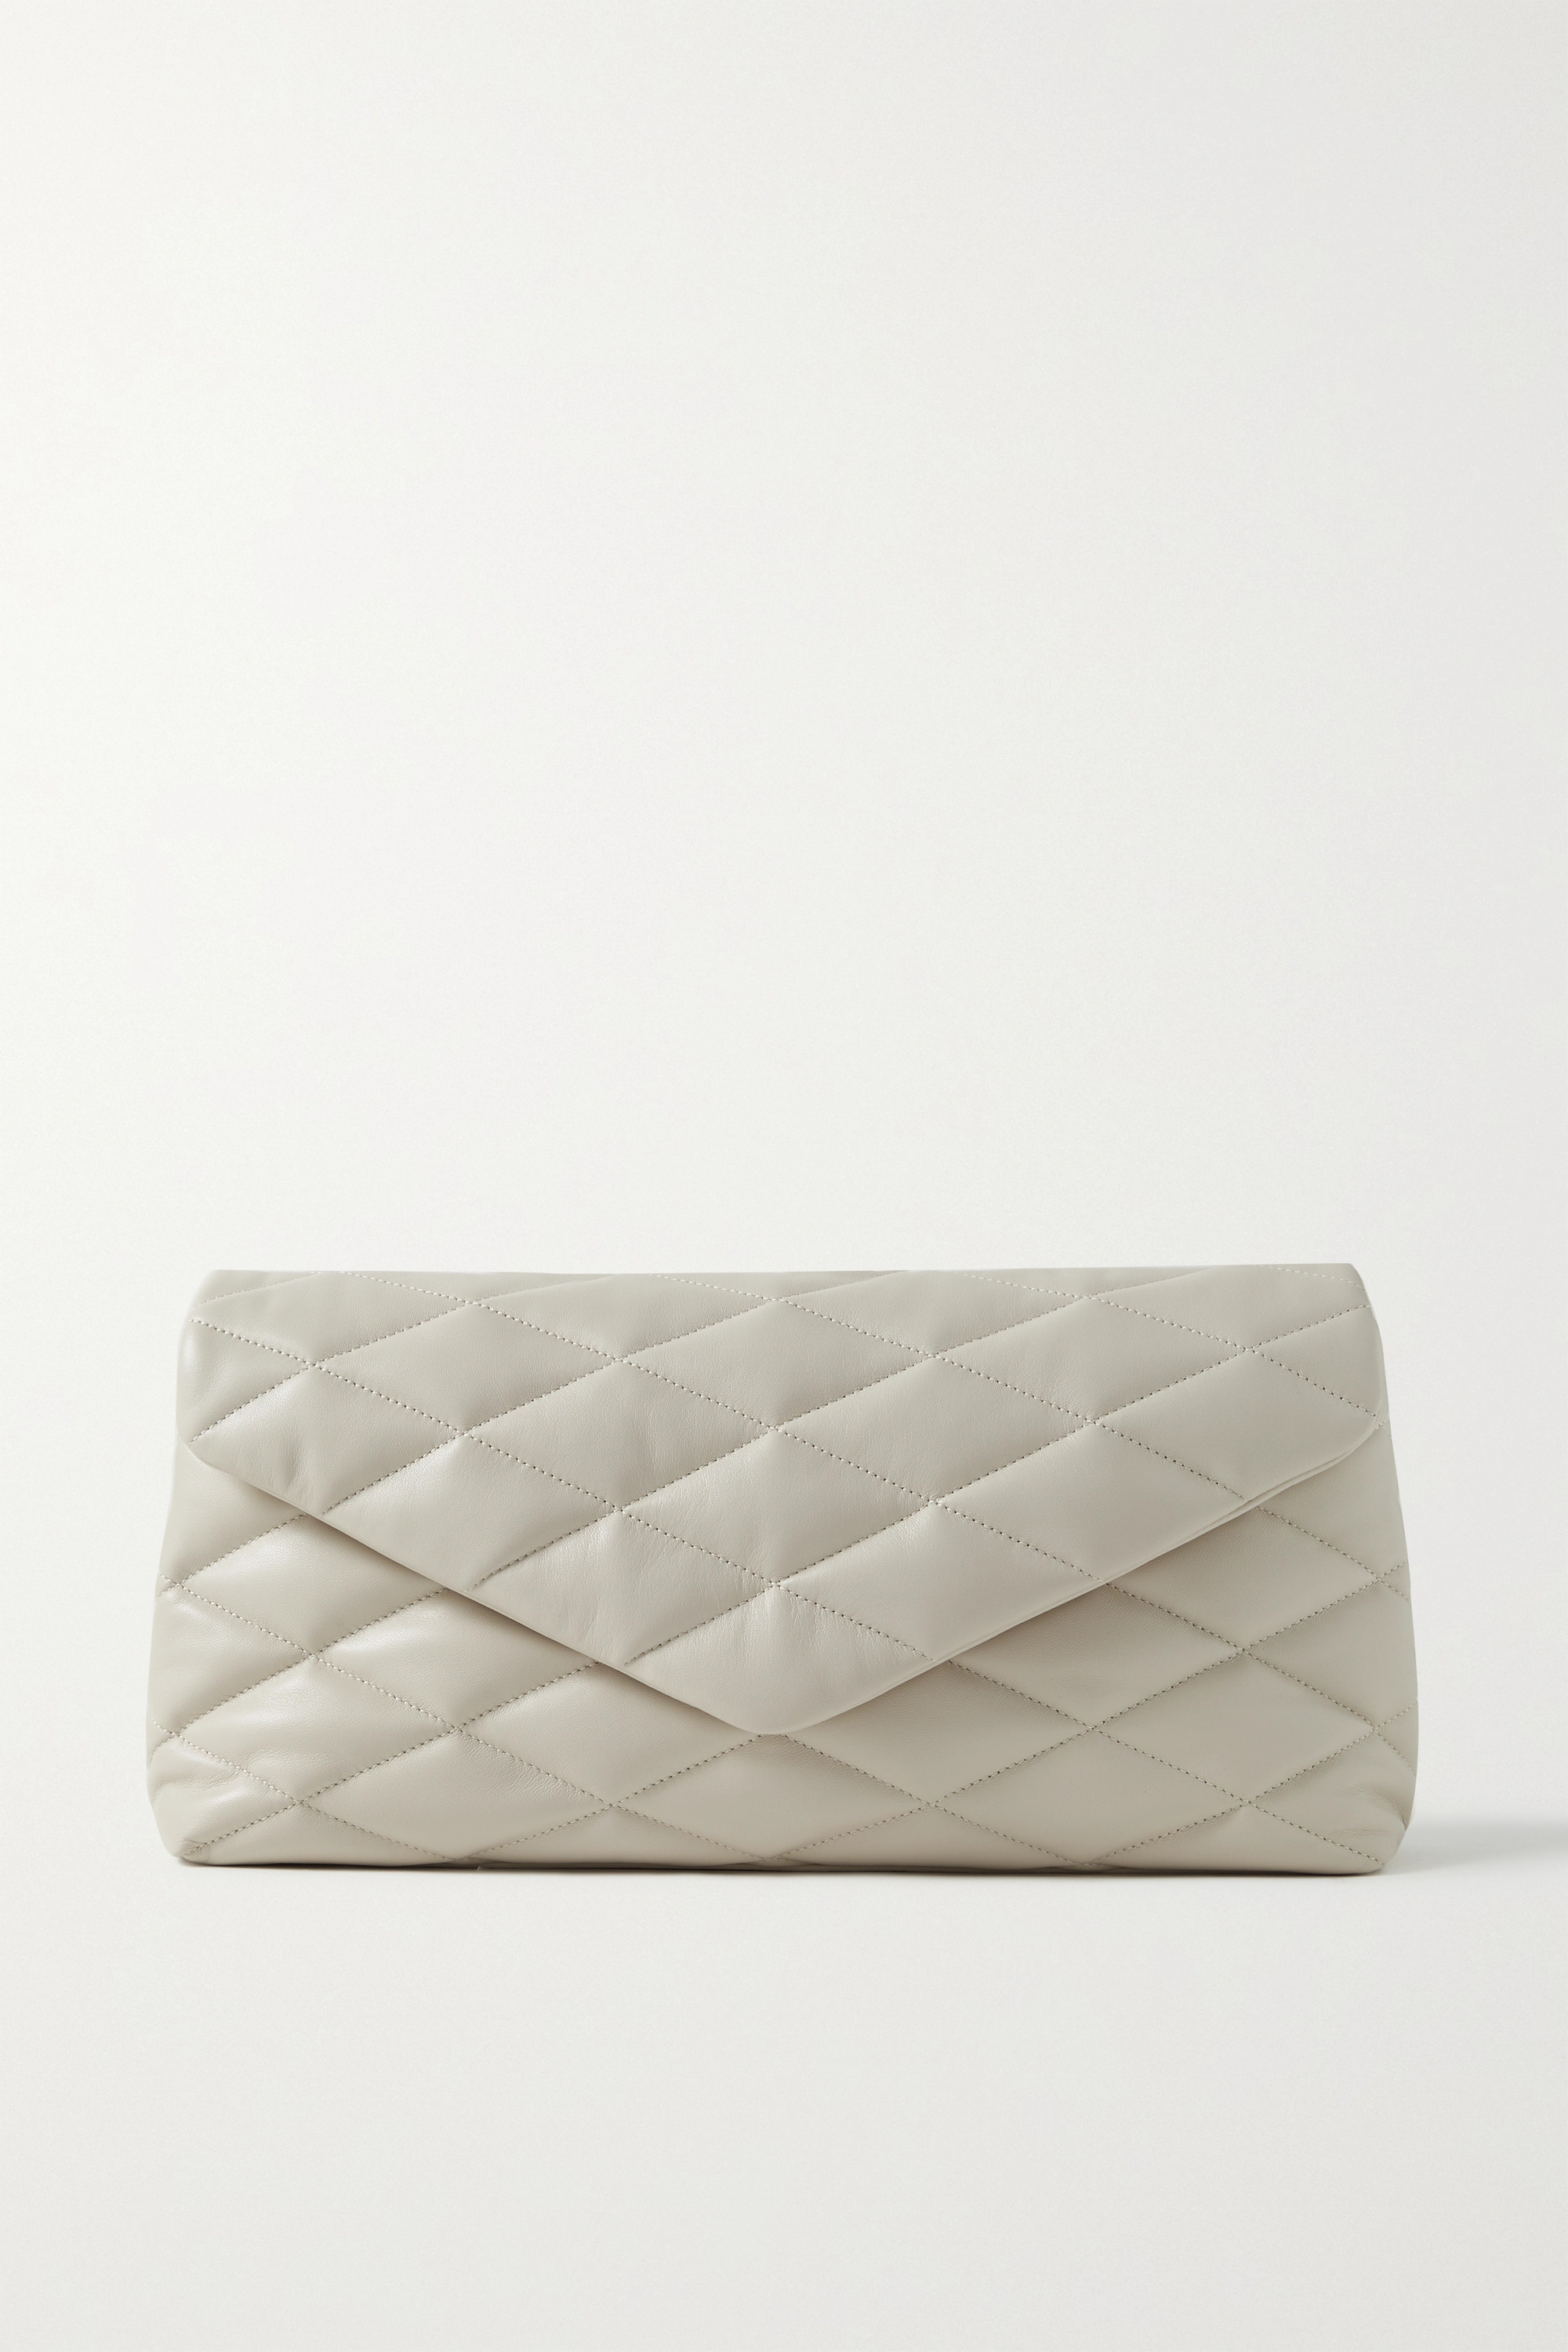 SAINT LAURENT - Sade quilted leather clutch